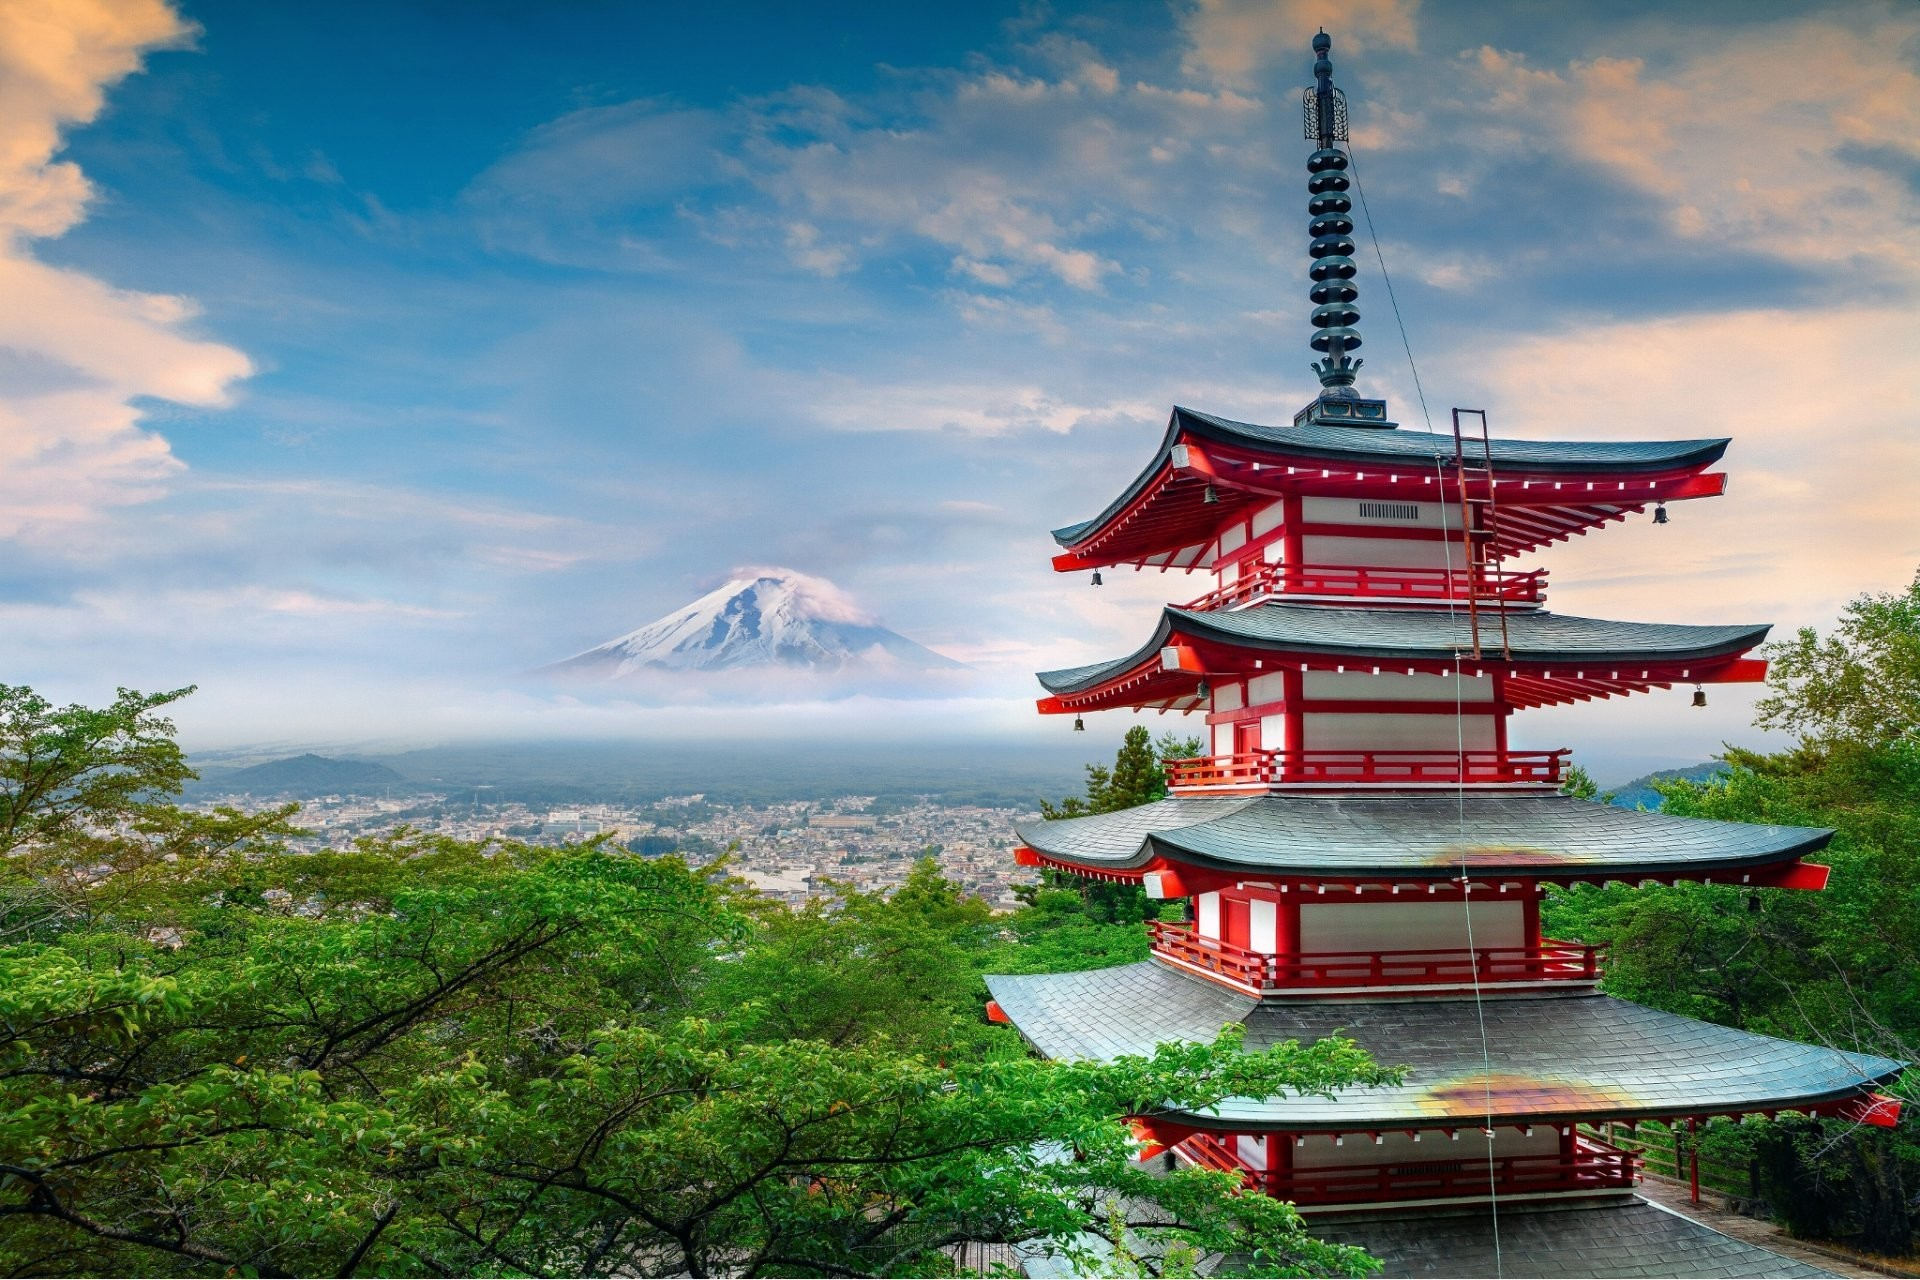 Res: 1920x1280, japan stratovolcano mountain fuji summer june weather house architecture